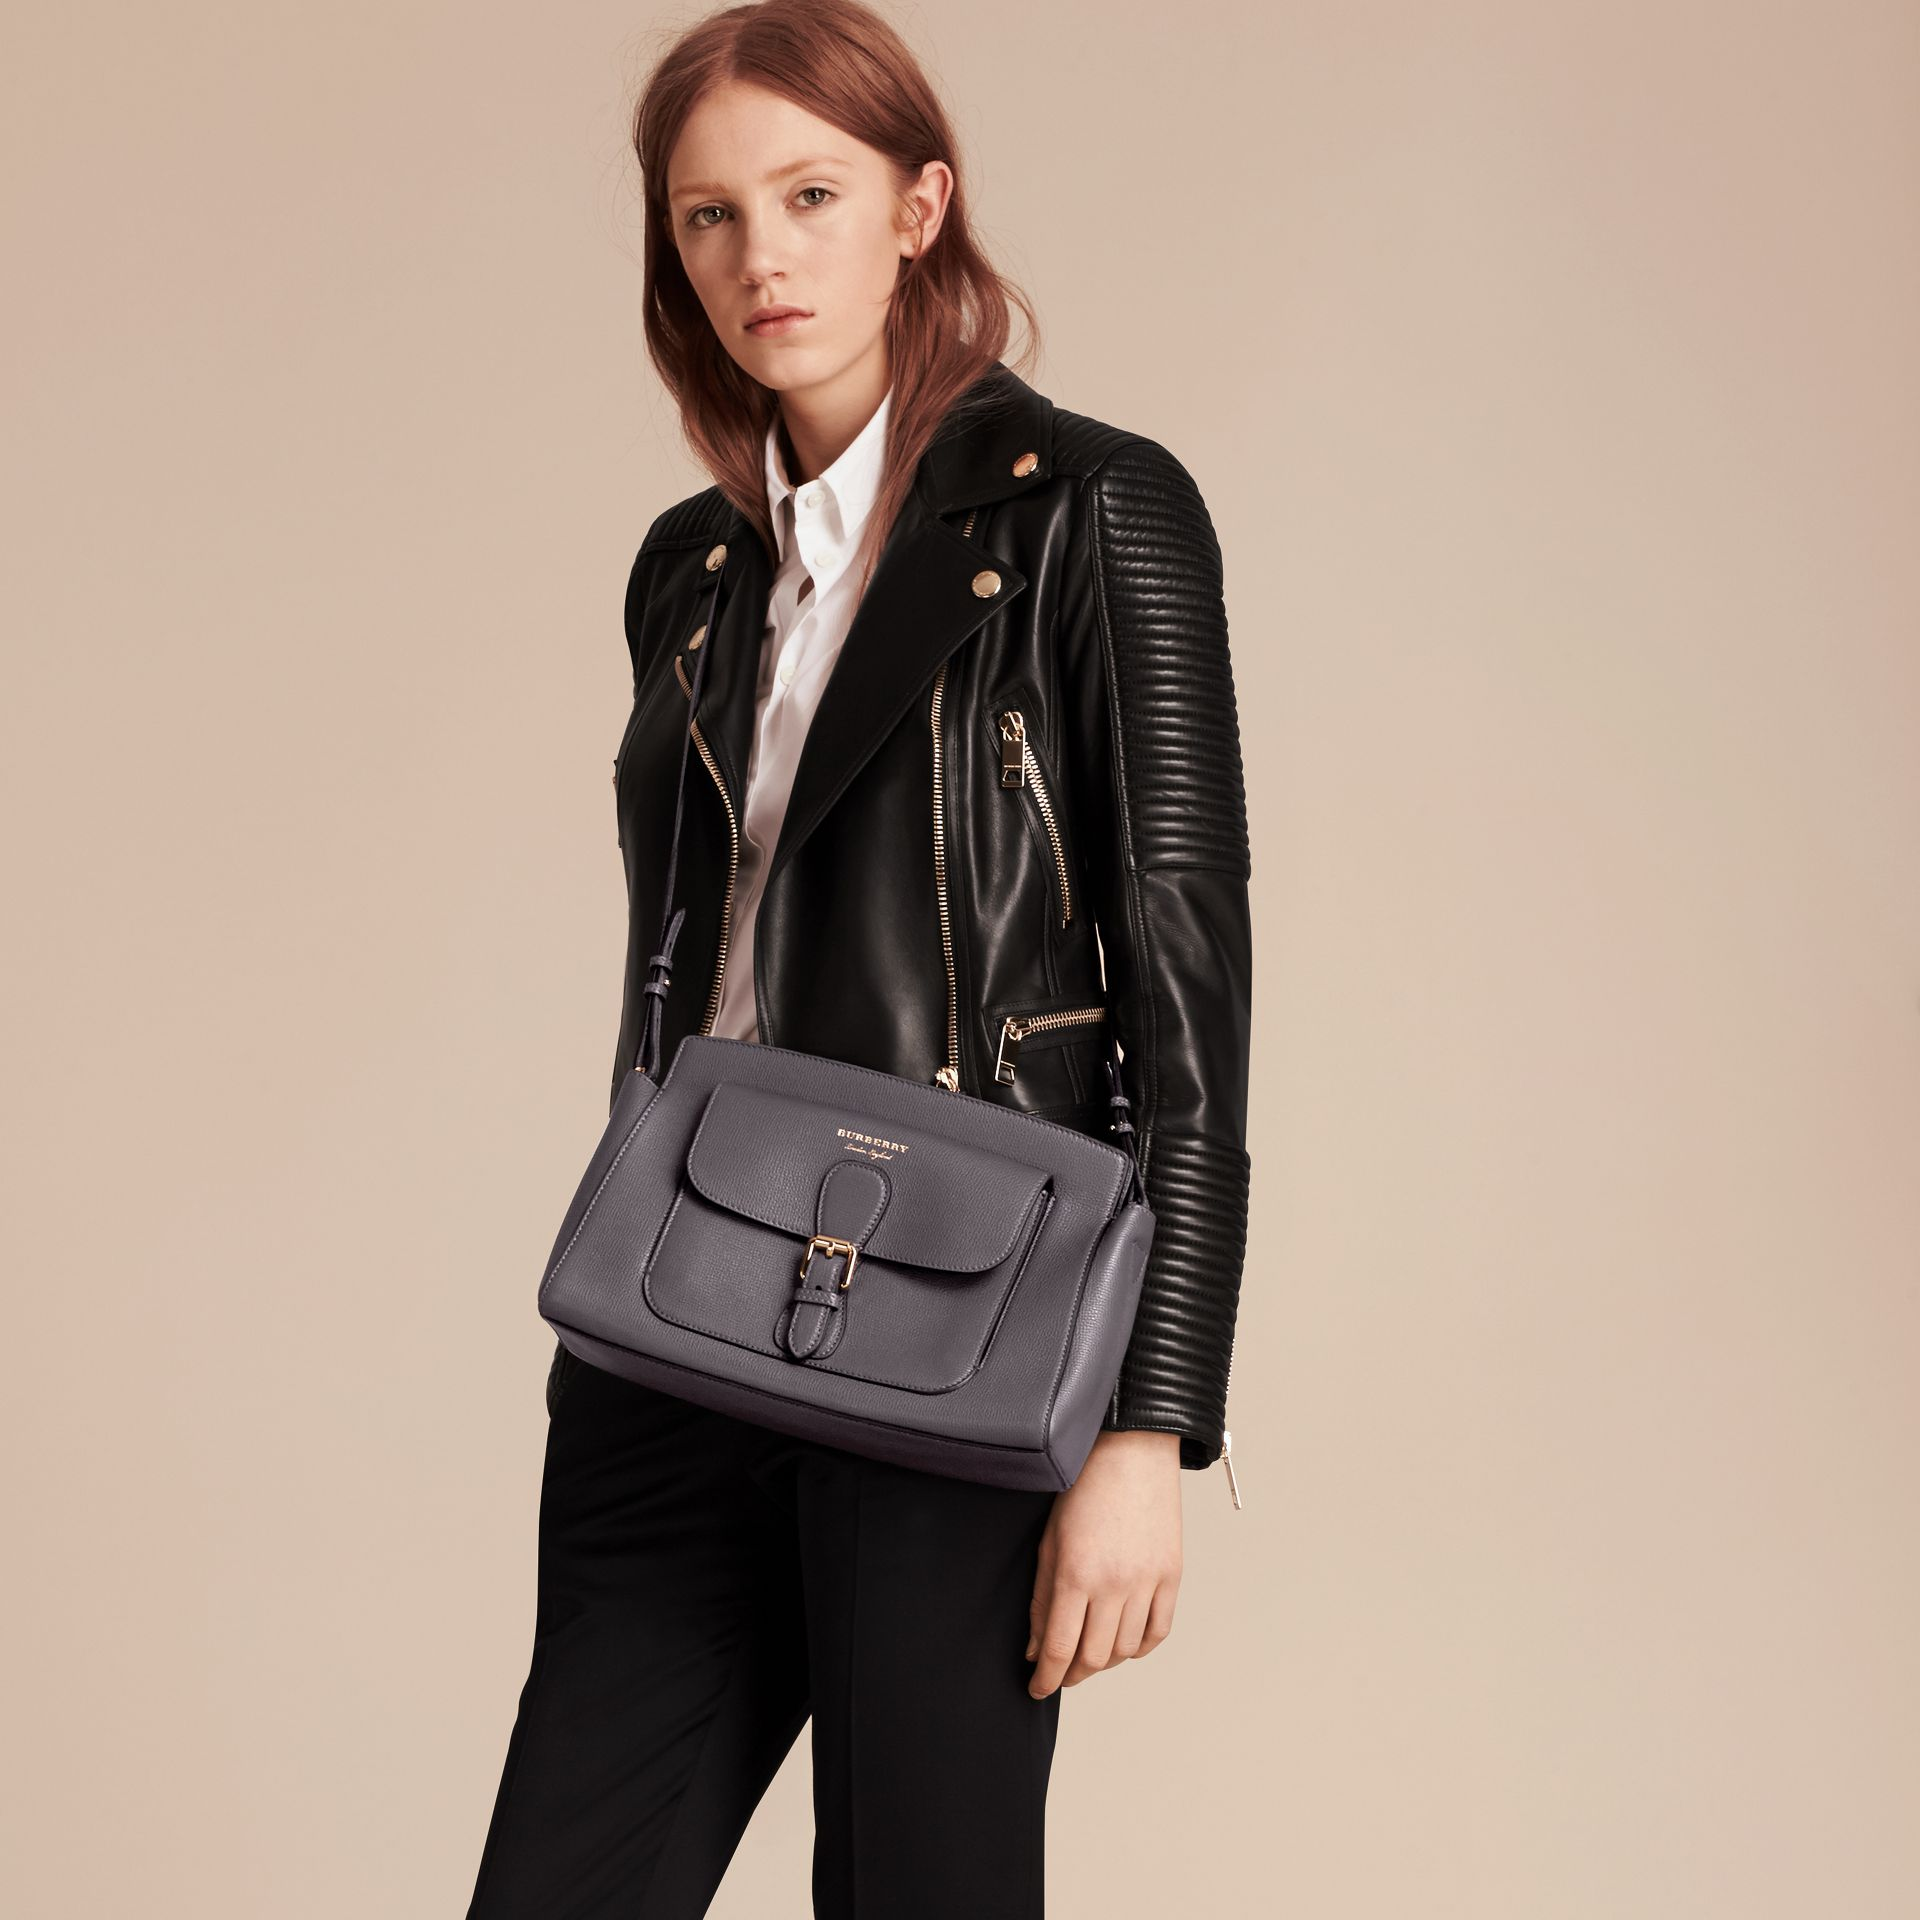 Sepia grey The Saddle Clutch in Grainy Bonded Leather Sepia Grey - gallery image 3